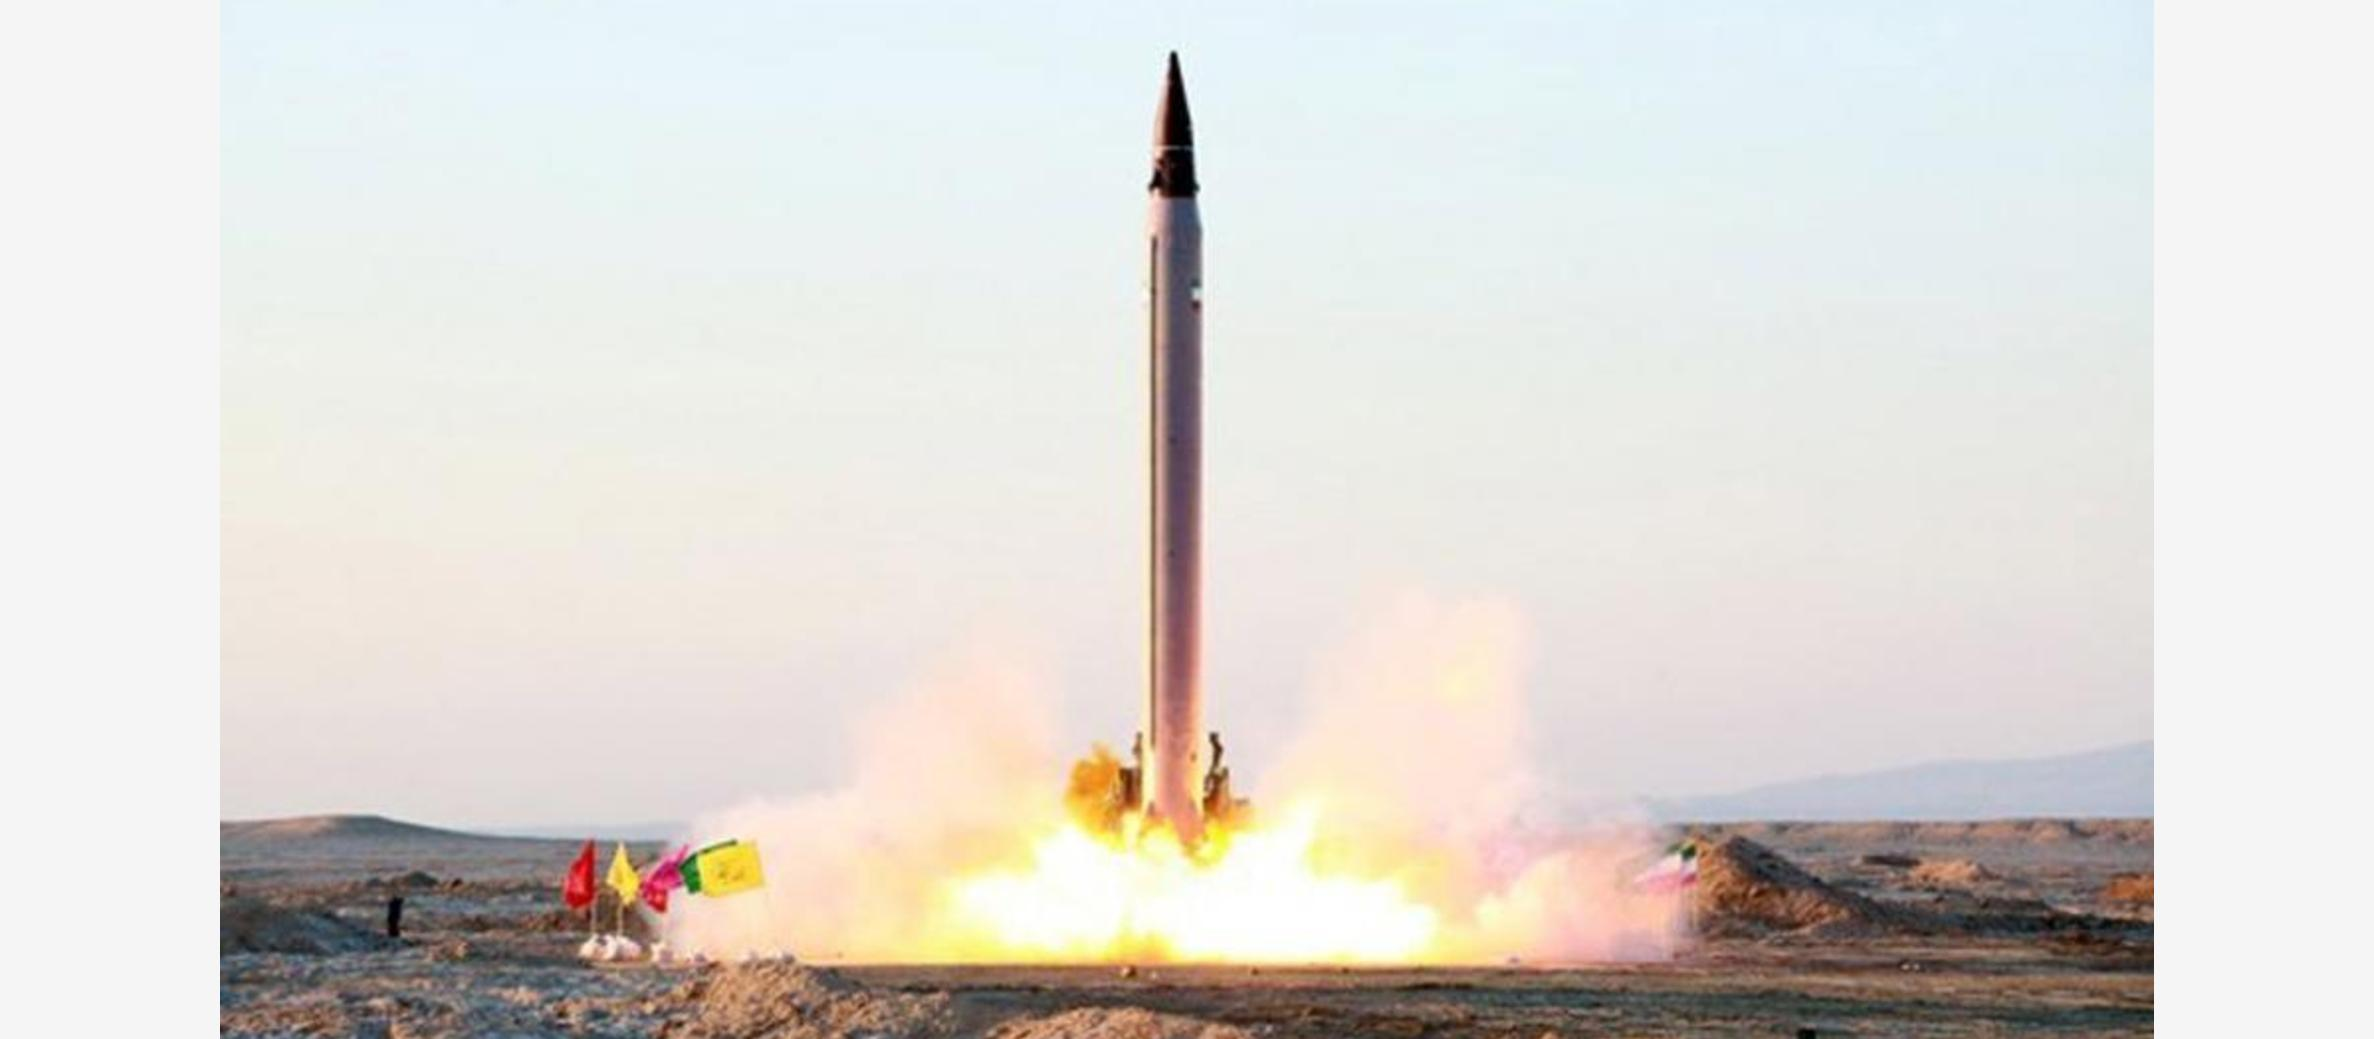 Iran to unveil upgraded ballistic missiles that could reach Israel